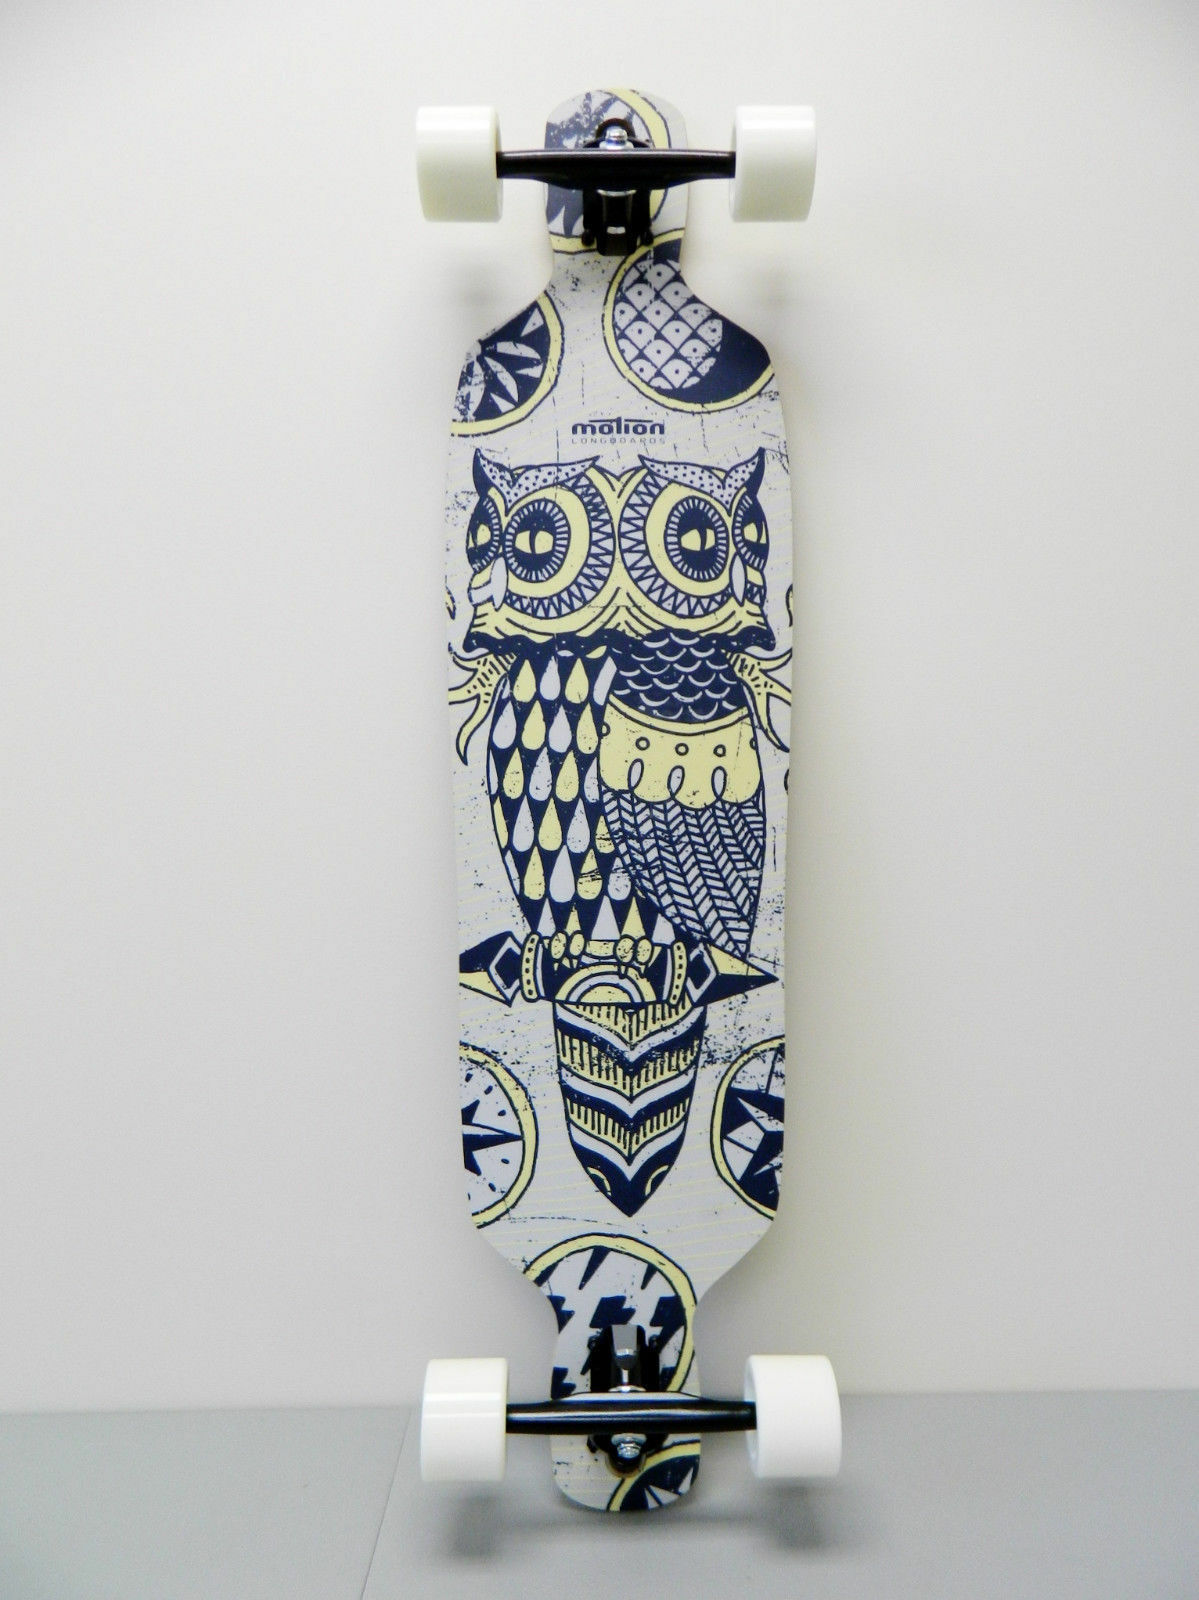 Pro Downhill Freeride Longboards Complete Glow in Dark Wheels  Different Models  new exclusive high-end